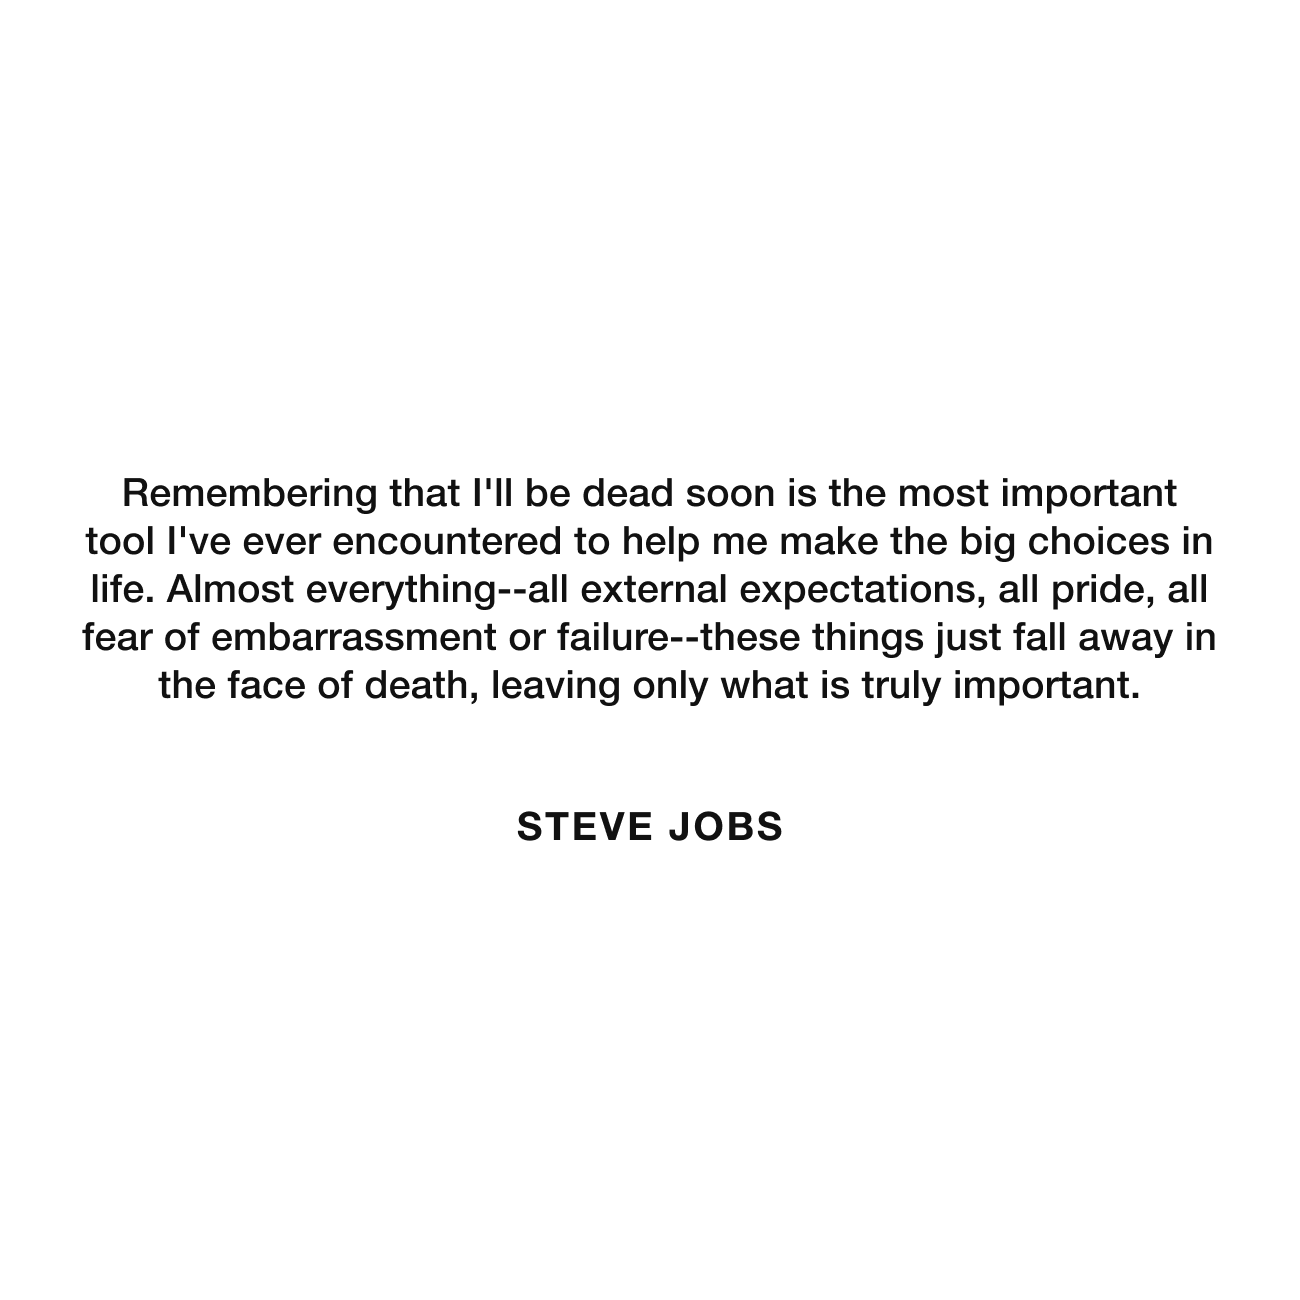 Memento Mori Quote Steve Jobs - Stoic Reflections